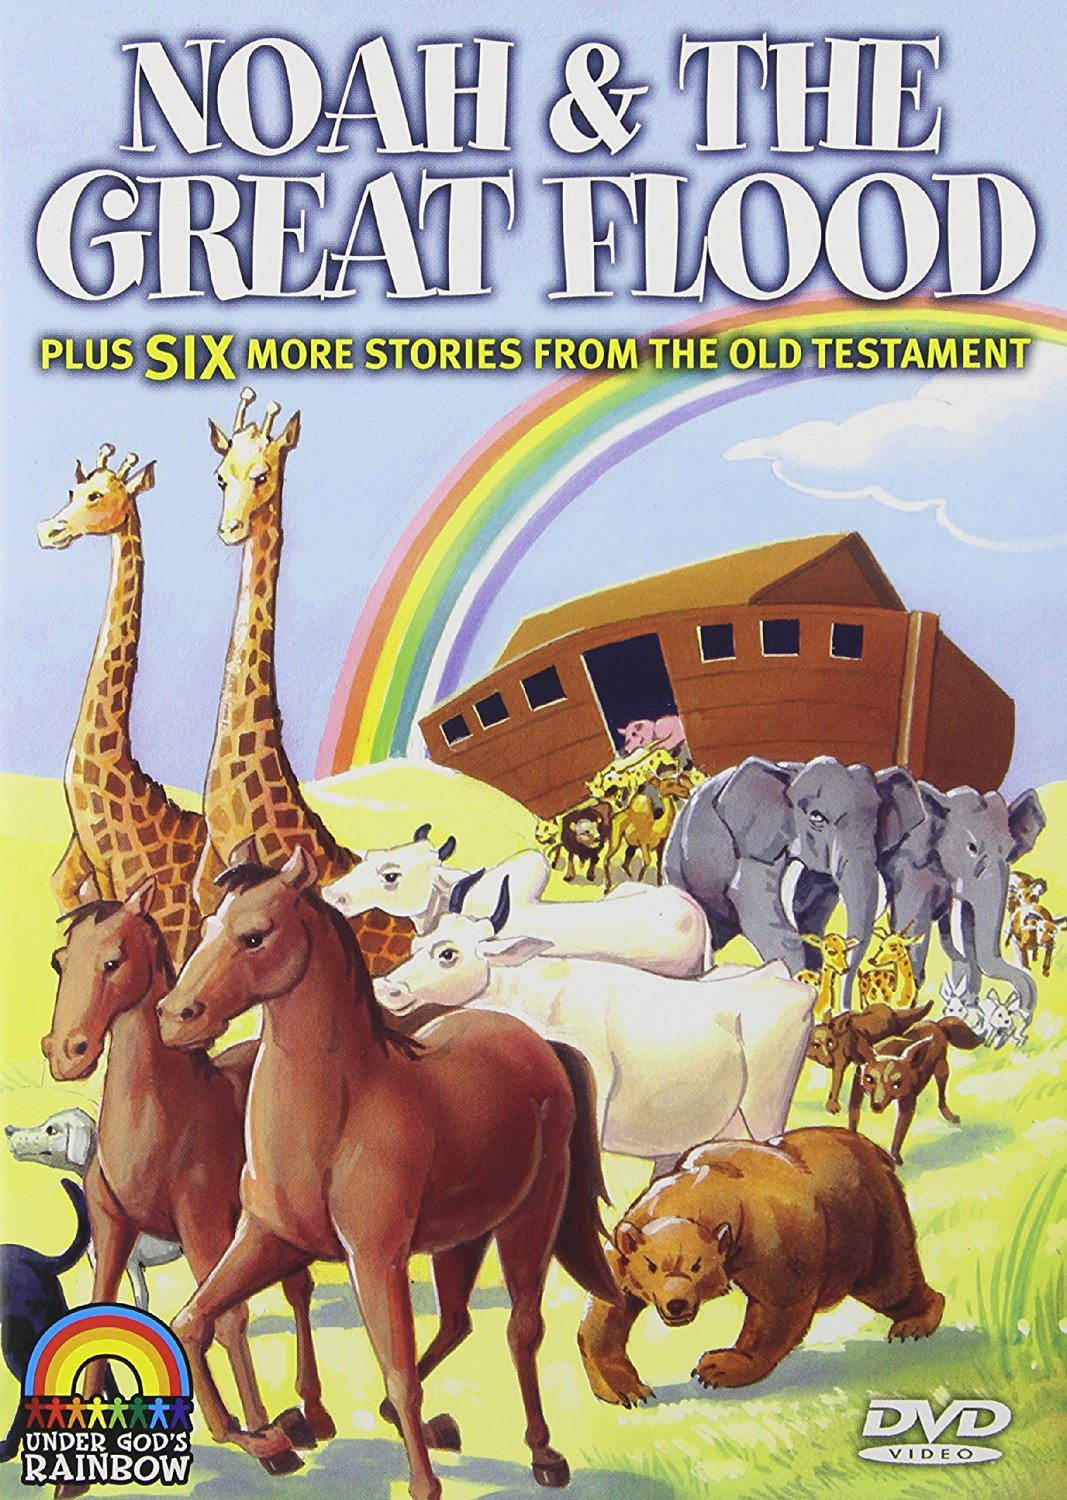 Children's Bible Stories - Noah And The Great Flood Plus 6 More Stories From The Old Testament by Under God's Rainbow